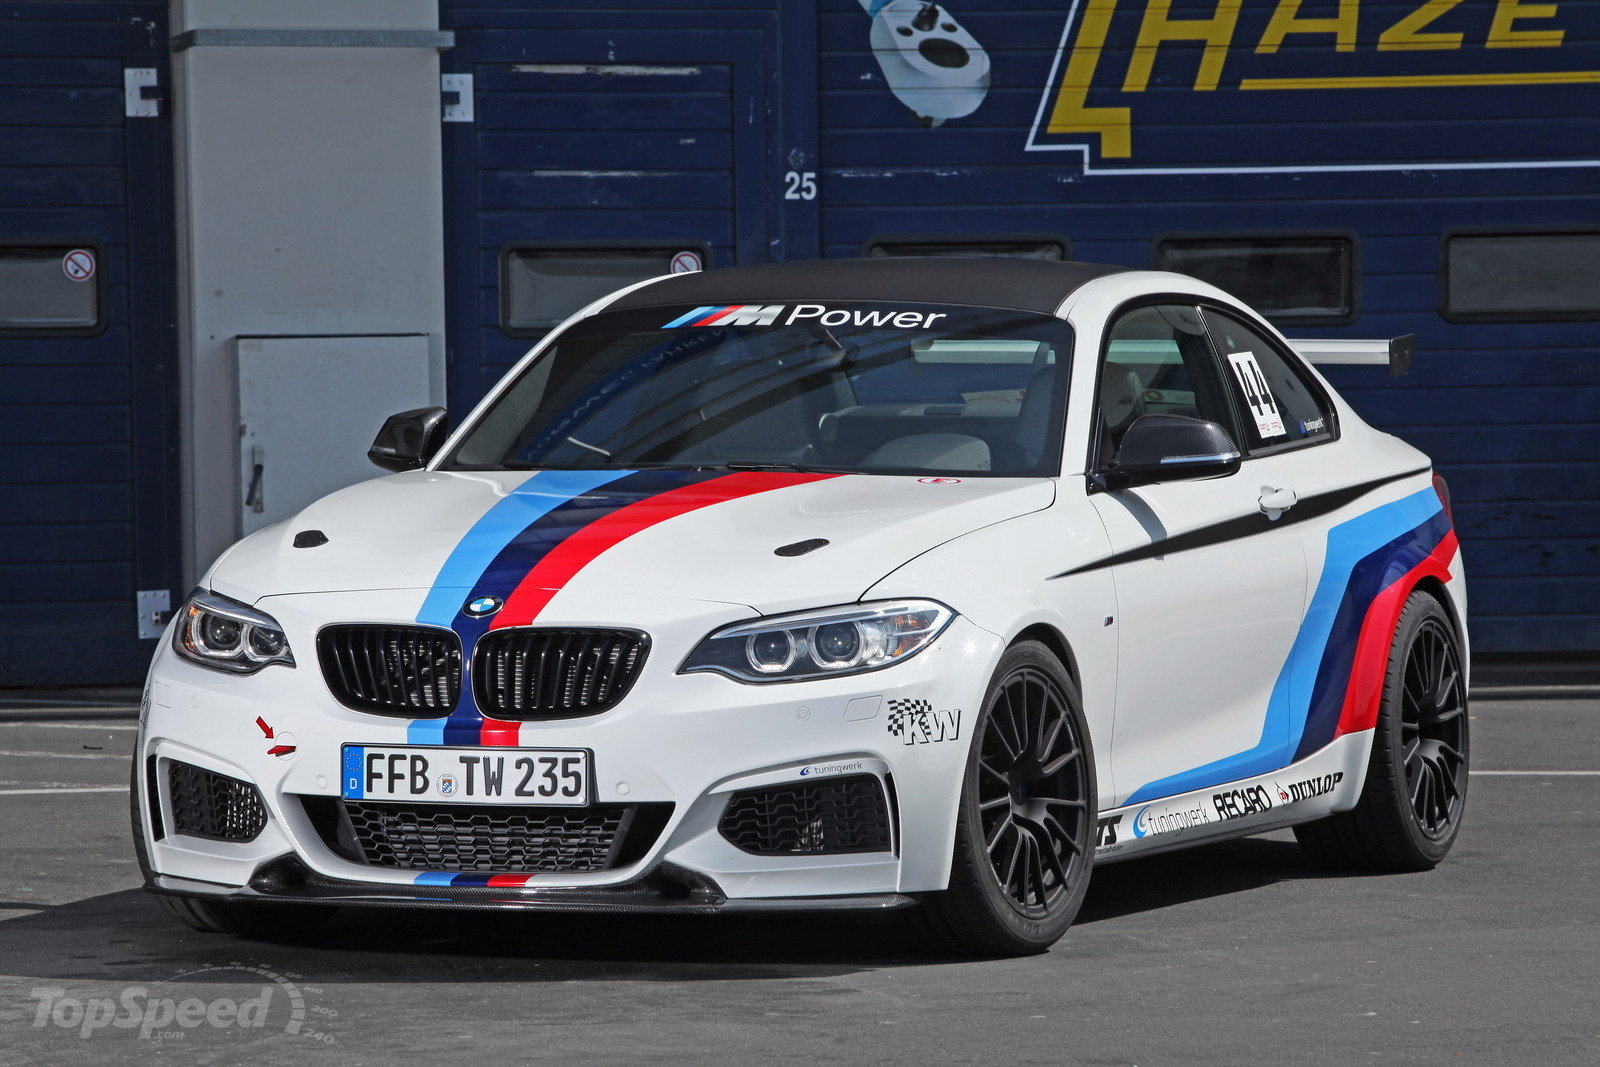 2014-bmw-m235i-by-tuningw_1600x0w.jpg